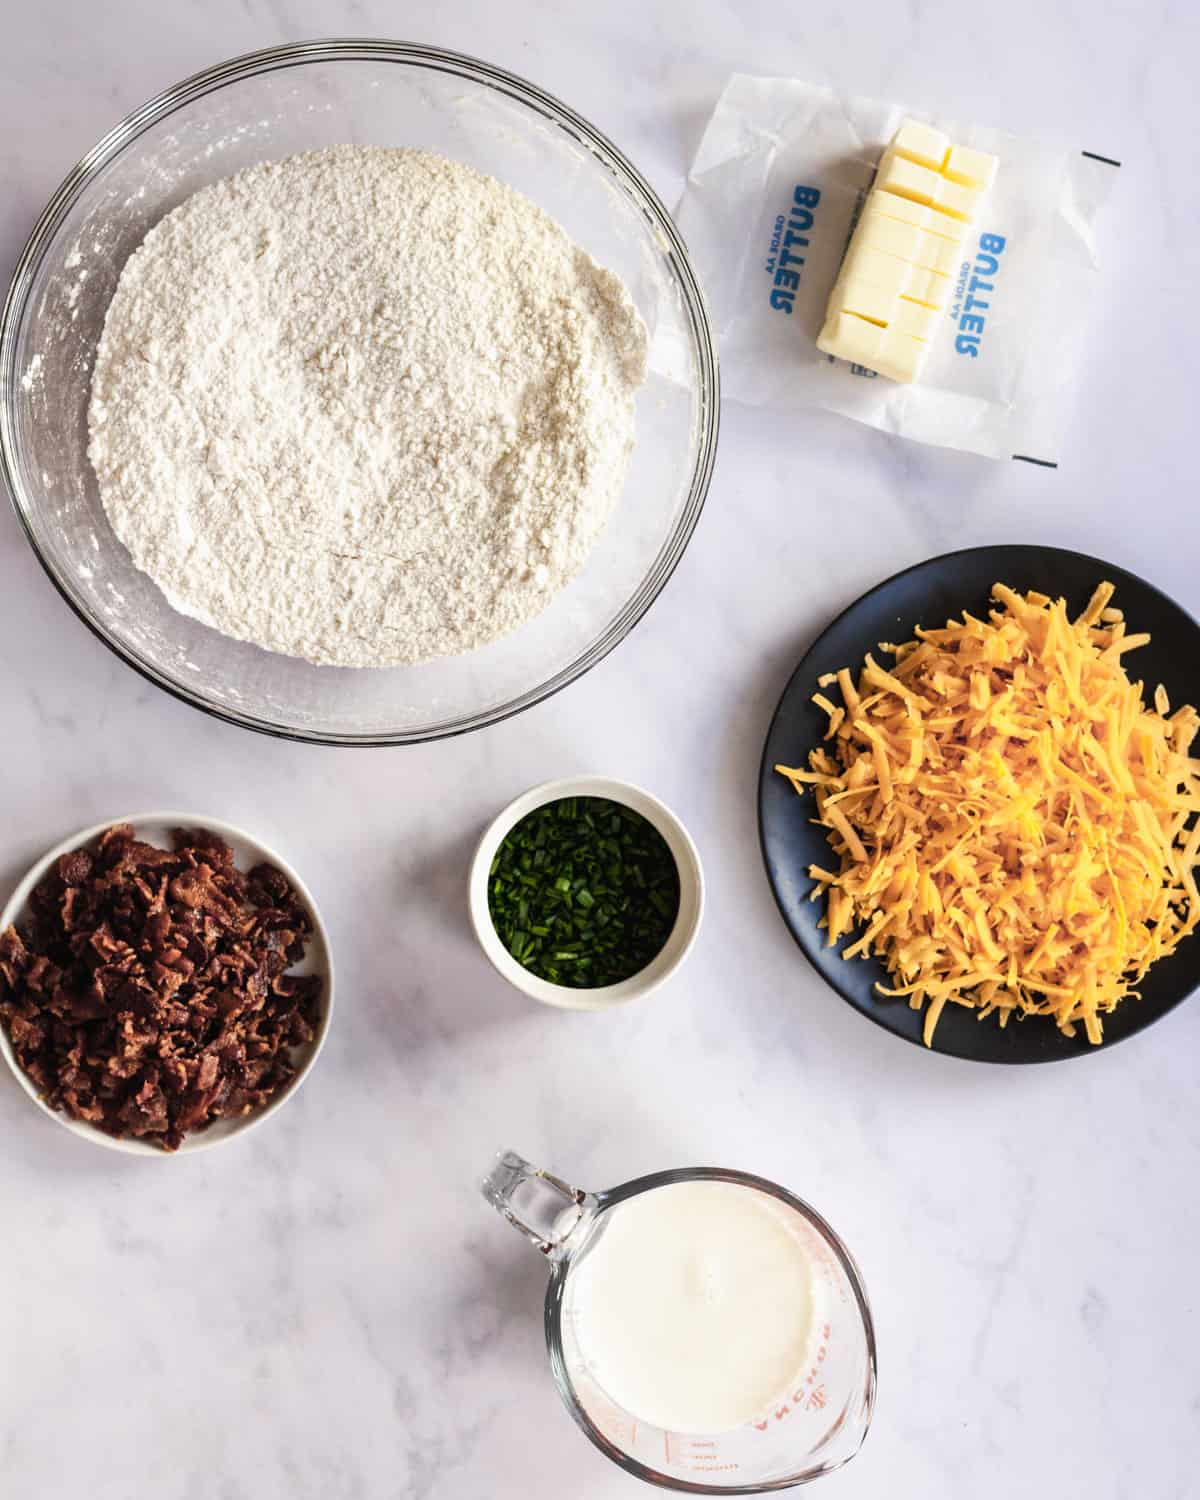 ingredients needed for cheddar bacon chive scones.